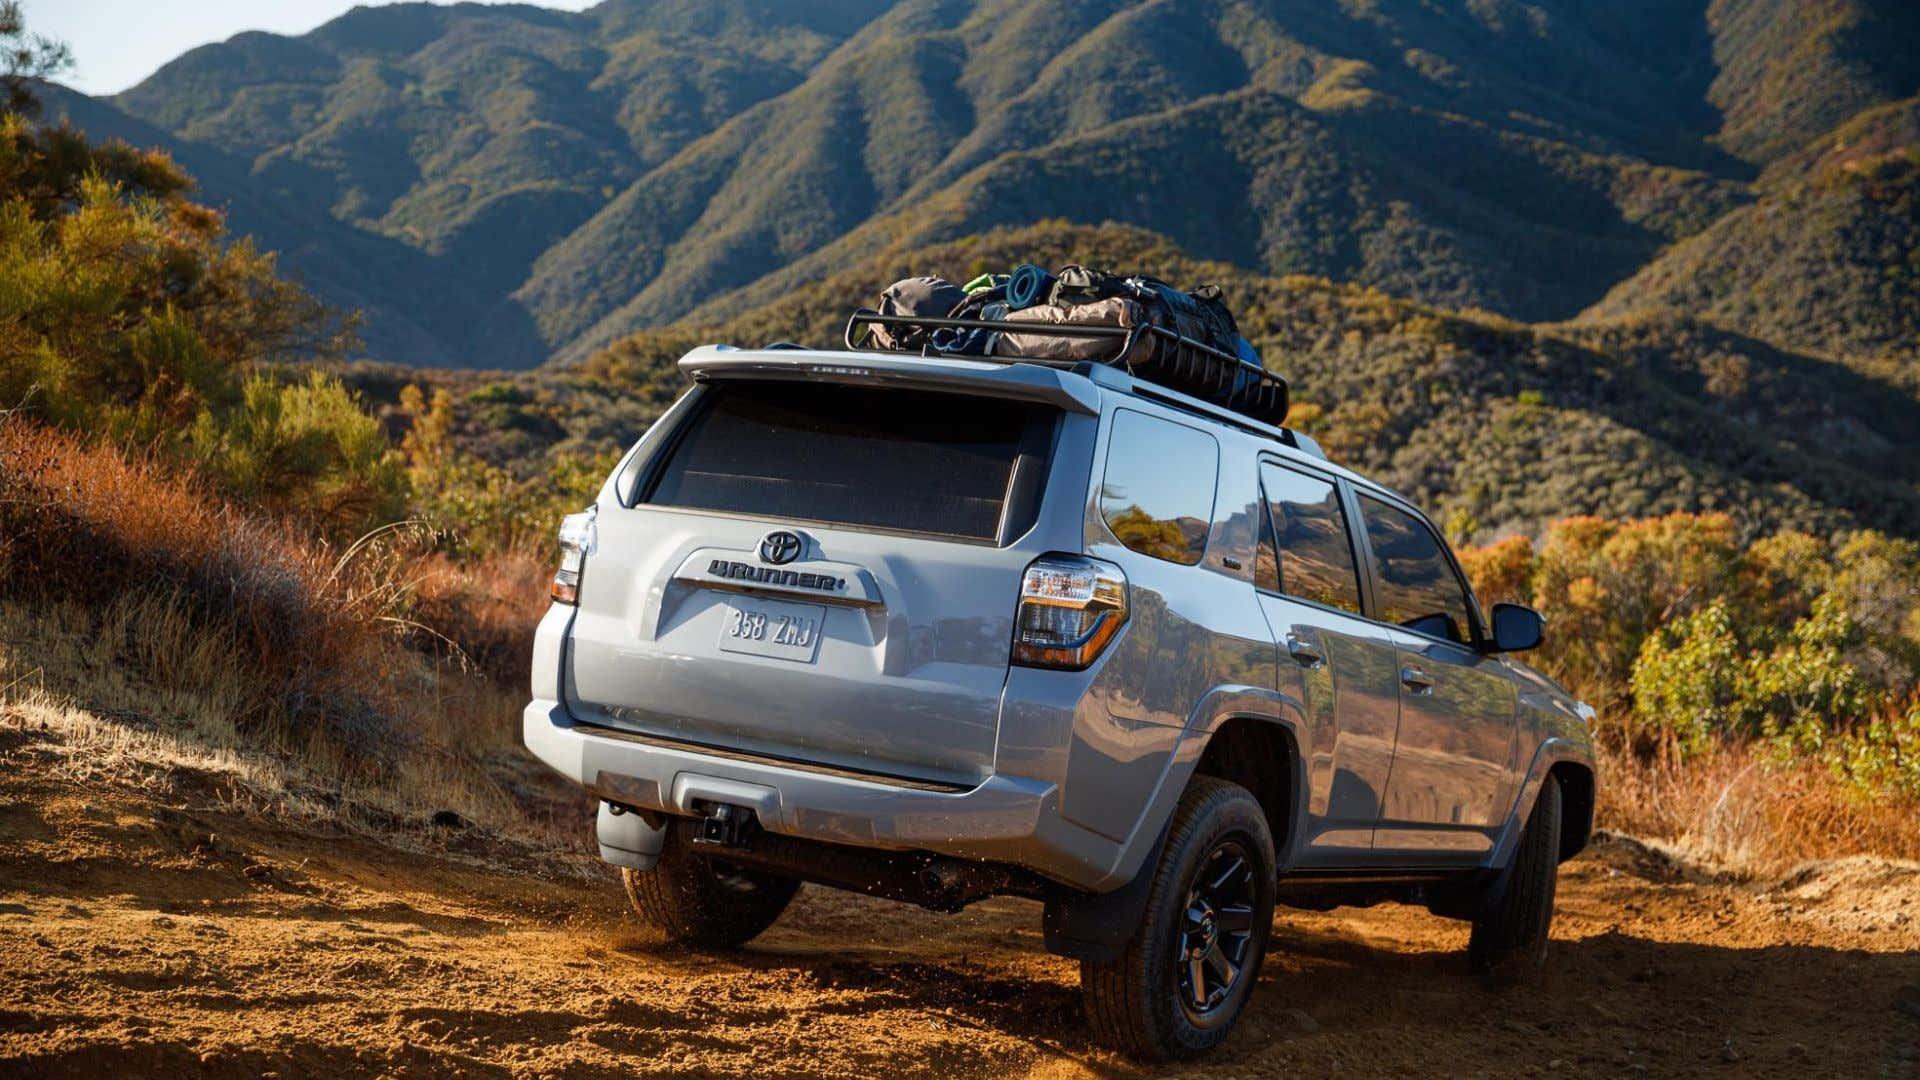 A Toyota 4Runner off-roading to a camp site.